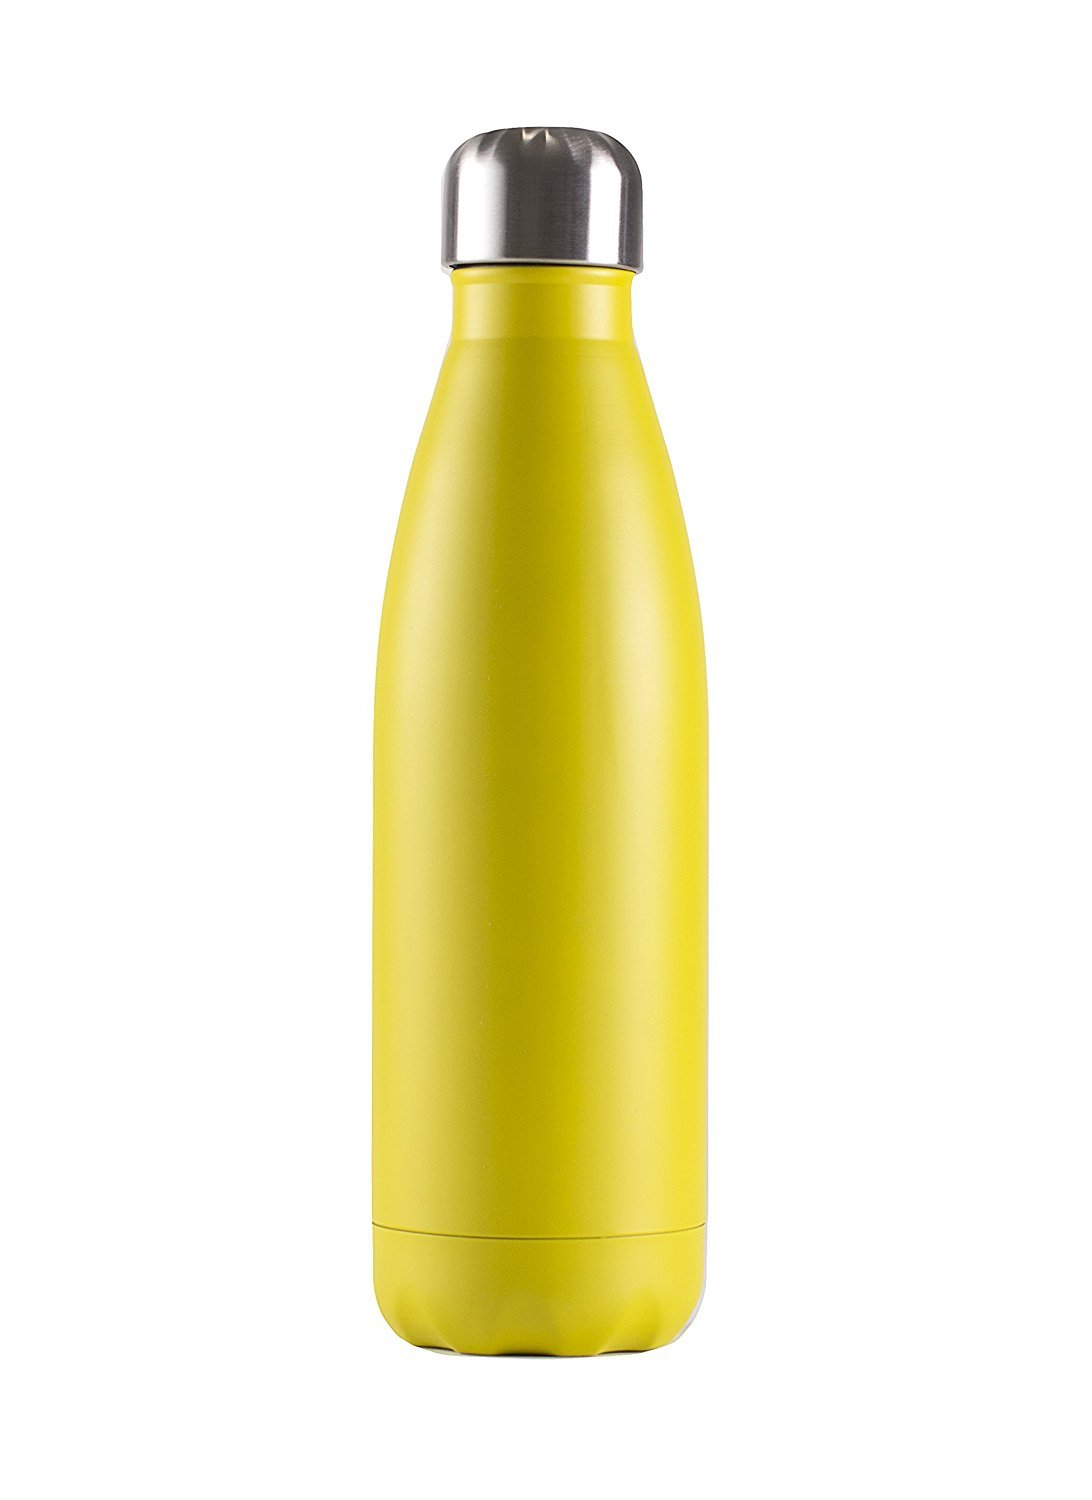 Yellow 500 ml Double Walled Stainless Steel Cola Shape Travel Sports Water Bottle Vacuum Insulated Water Bottle Keeps Your Drink Hot /& Cold BPA Free BonBon 17 Oz